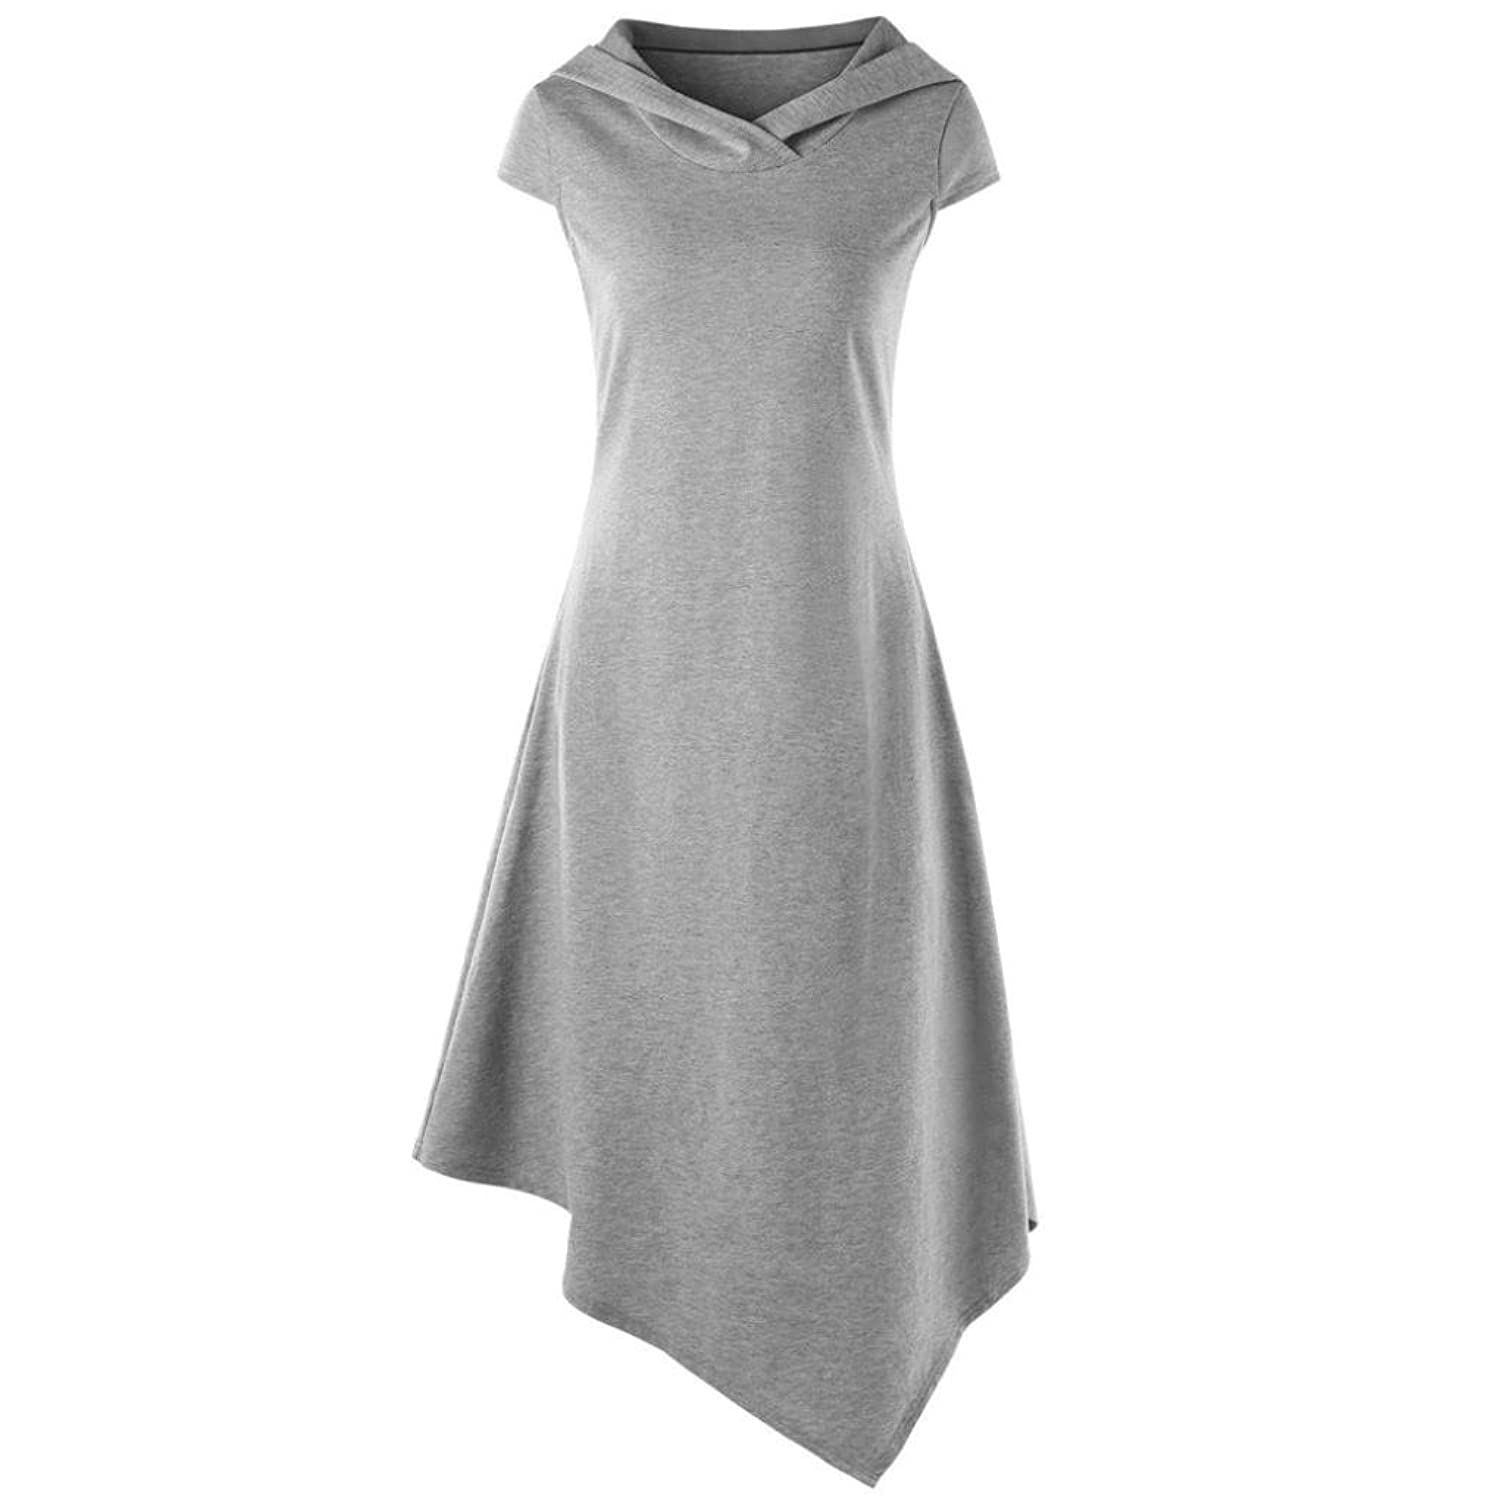 Women's Hooded Irregular Hem Dress Brief Stylish Summer Holiday Daily Casual Comfy Dress Cut Out Midi Dress